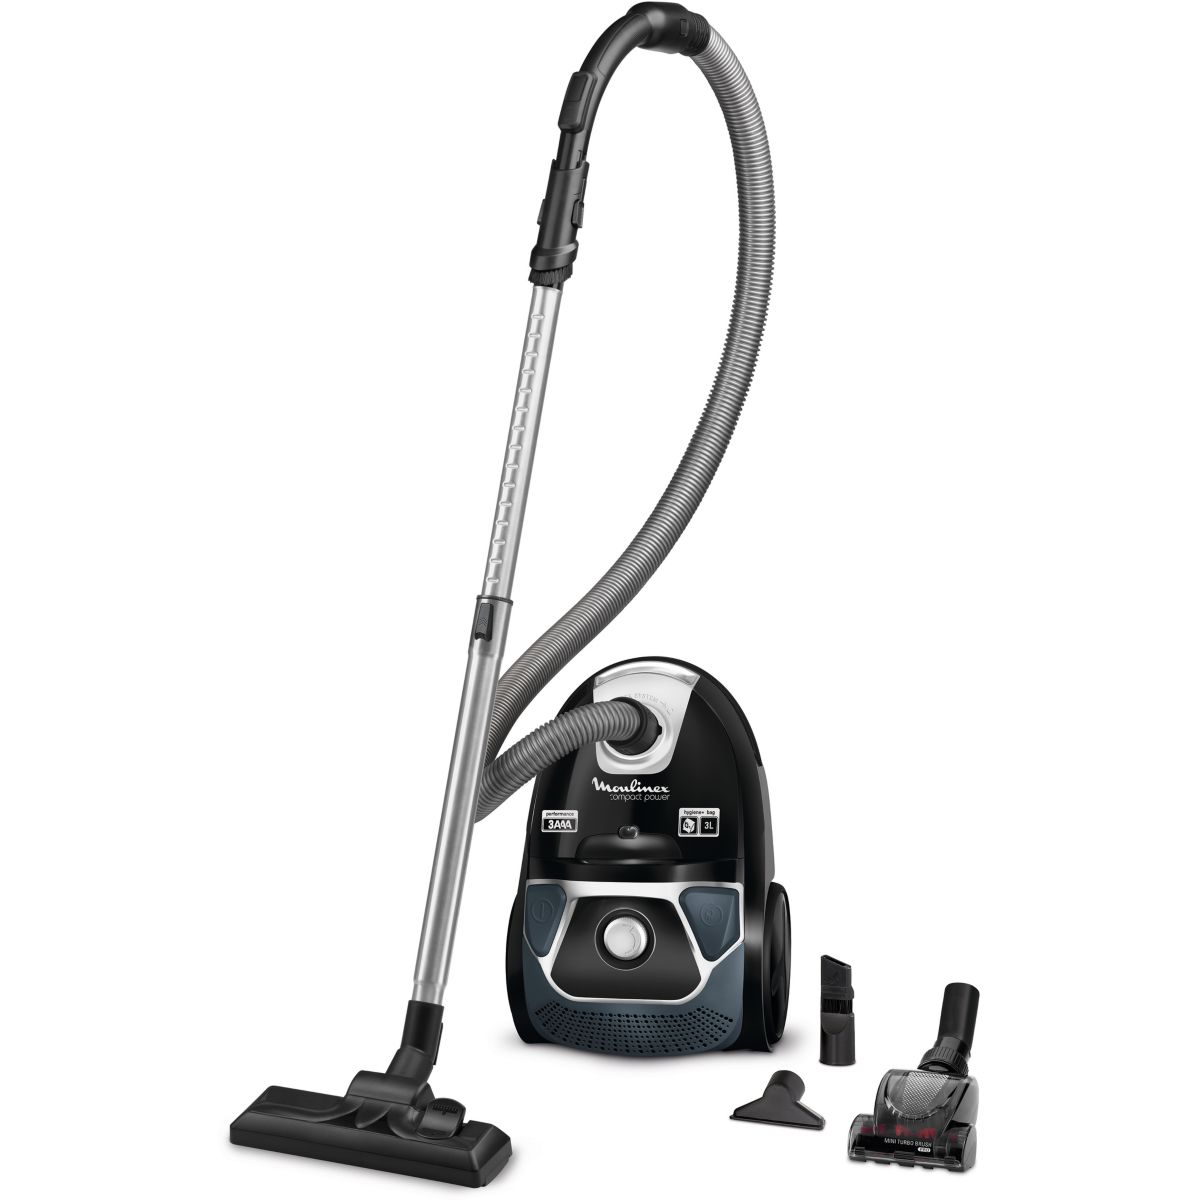 Aspirateur avec sac MOULINEX MO3985PA Compact power animal care